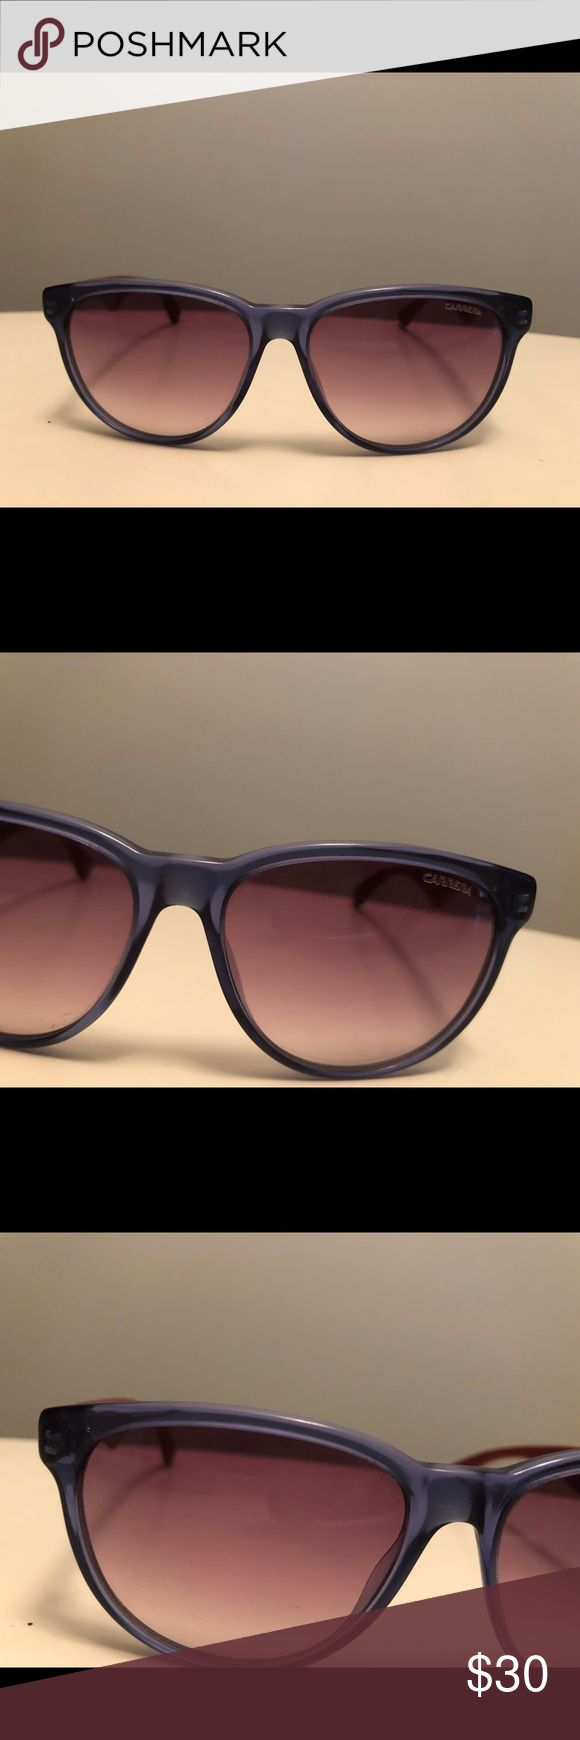 Carrera Sunglasses Model 6004 Blue frames and red arms. No scratches or imperfections. Seldom Worn. Women's Sunglasses Carrera Accessories Sunglasses